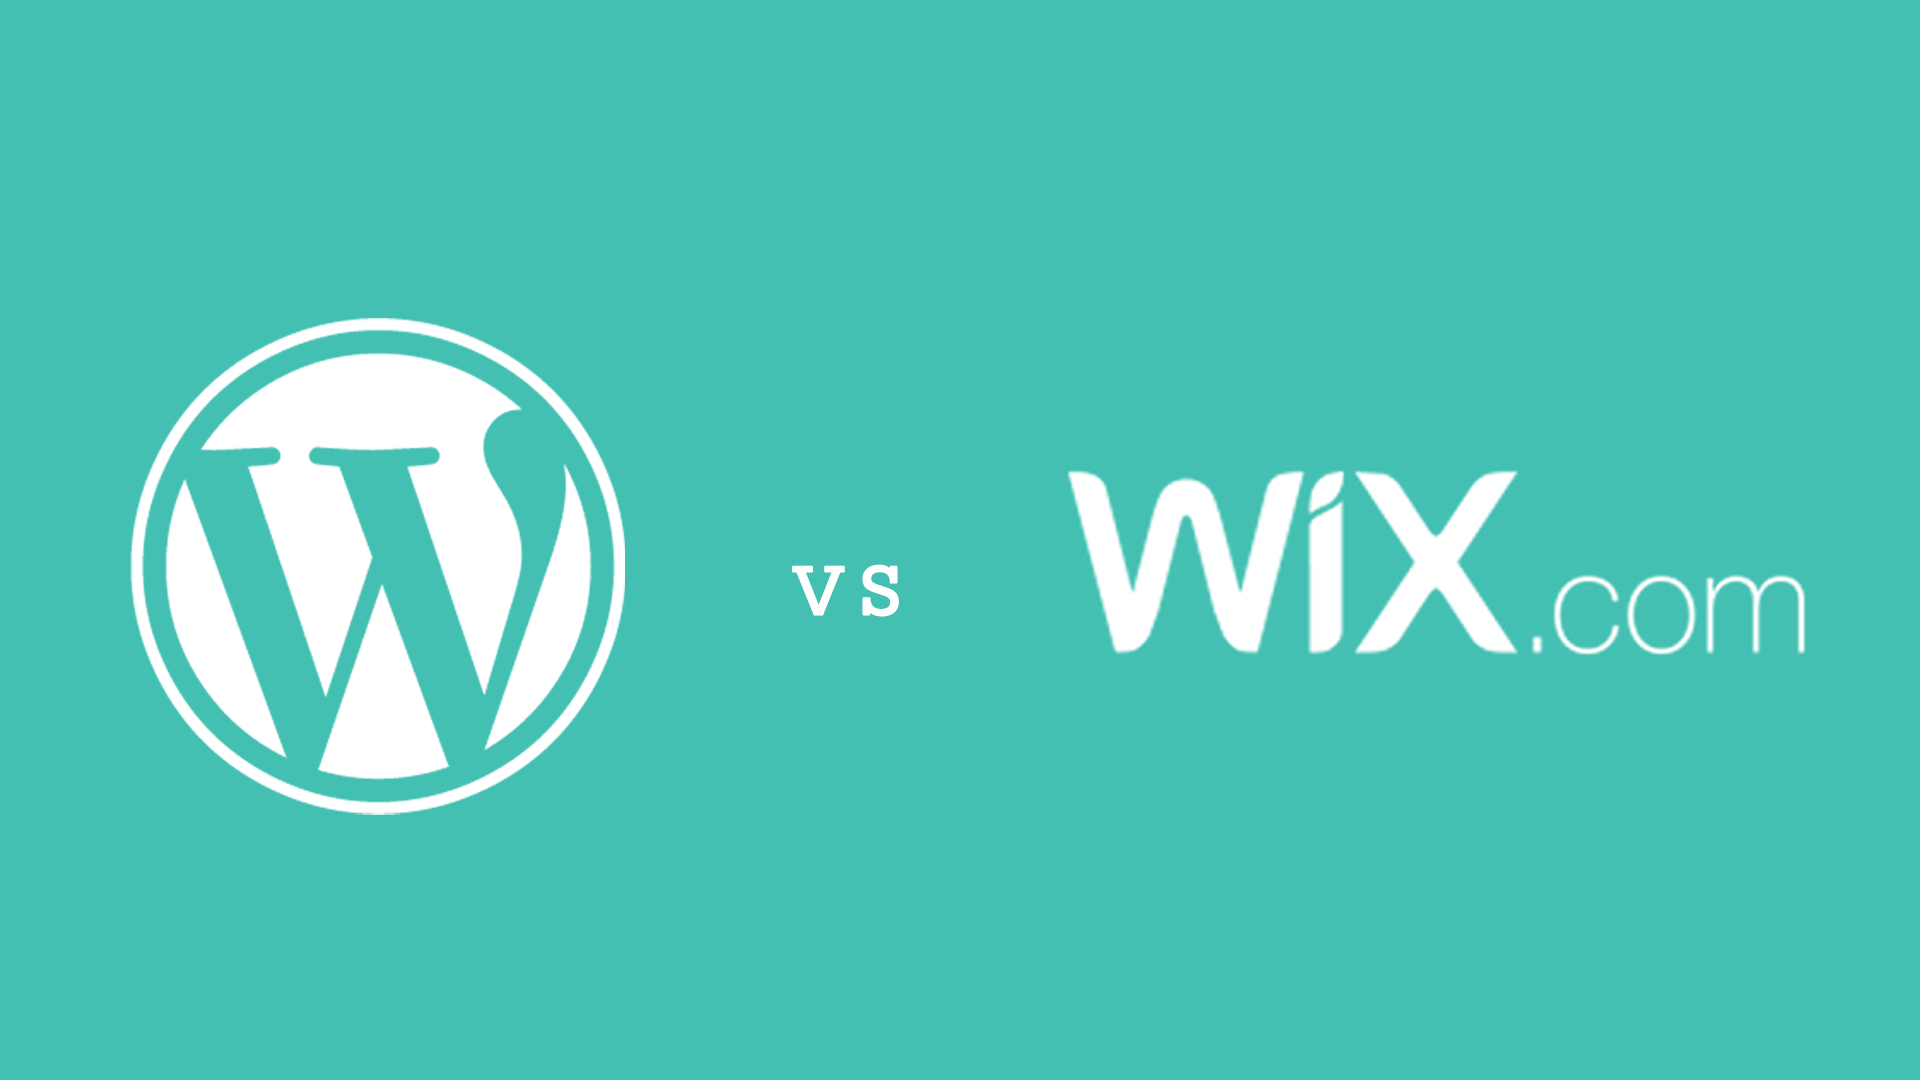 WordPress vs Wix.com